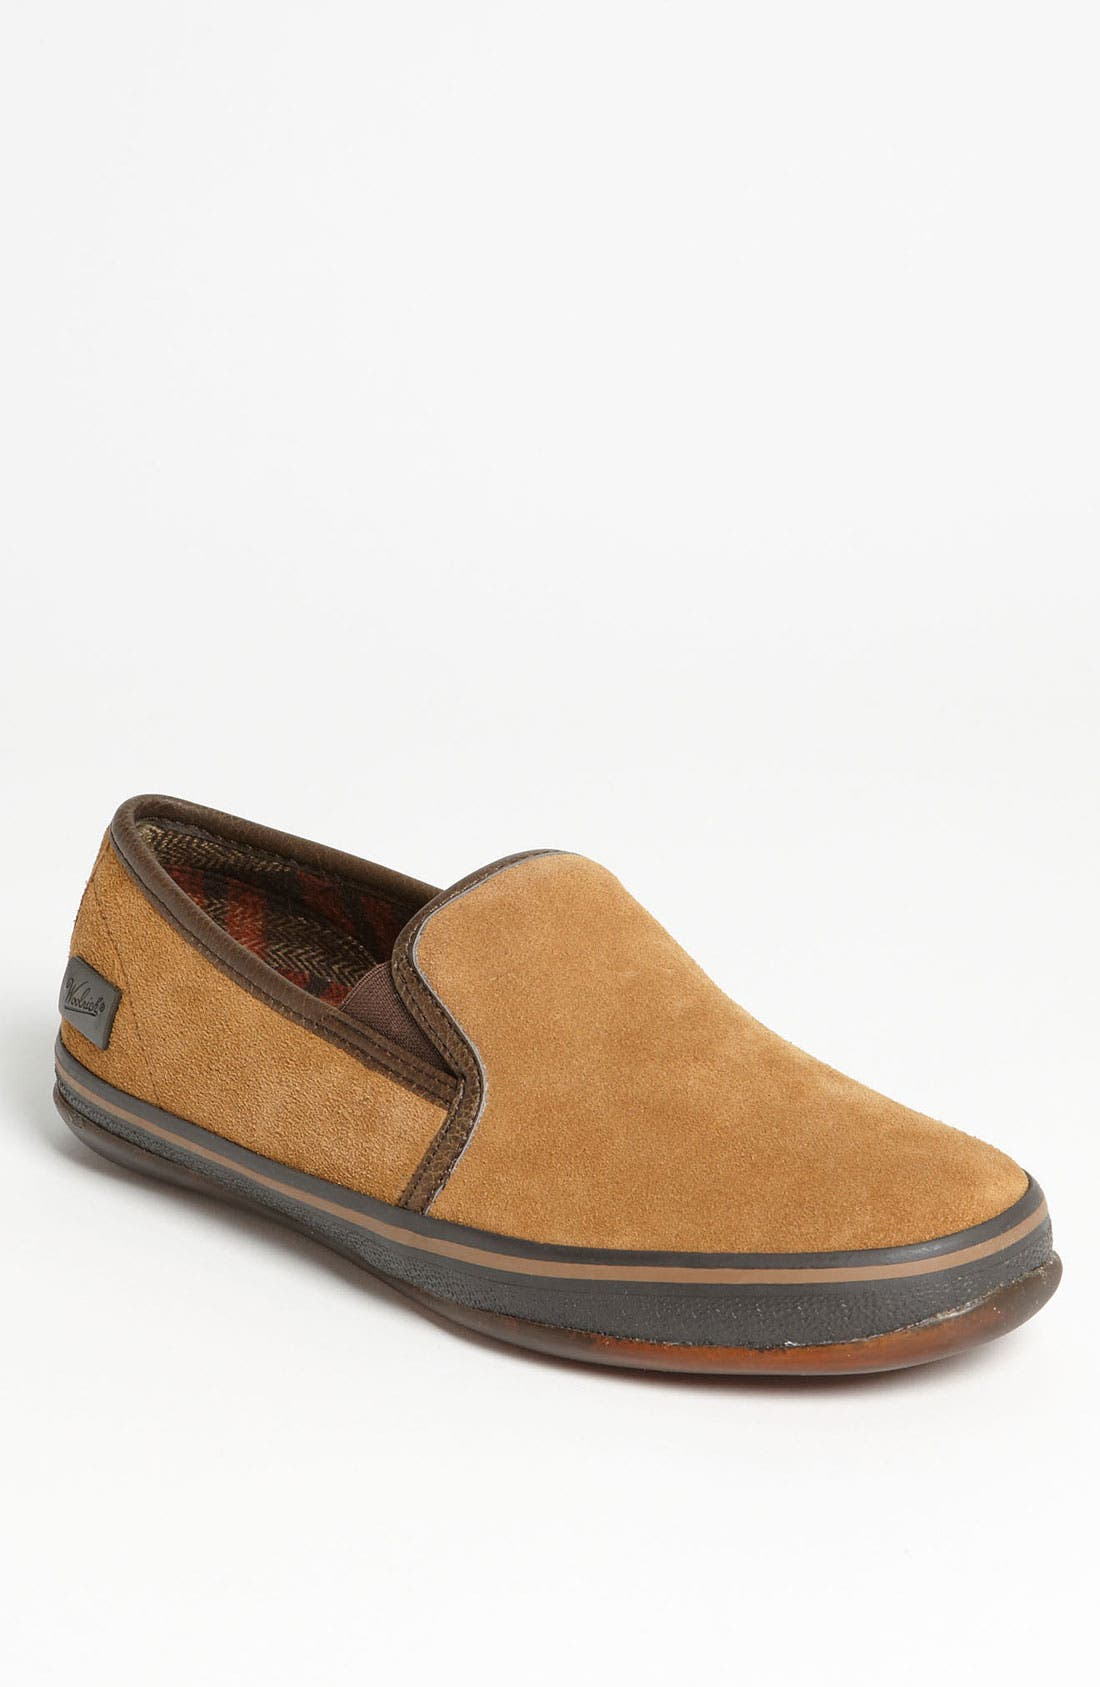 Alternate Image 1 Selected - Woolrich 'Tanglewood' Slipper (Online Only)